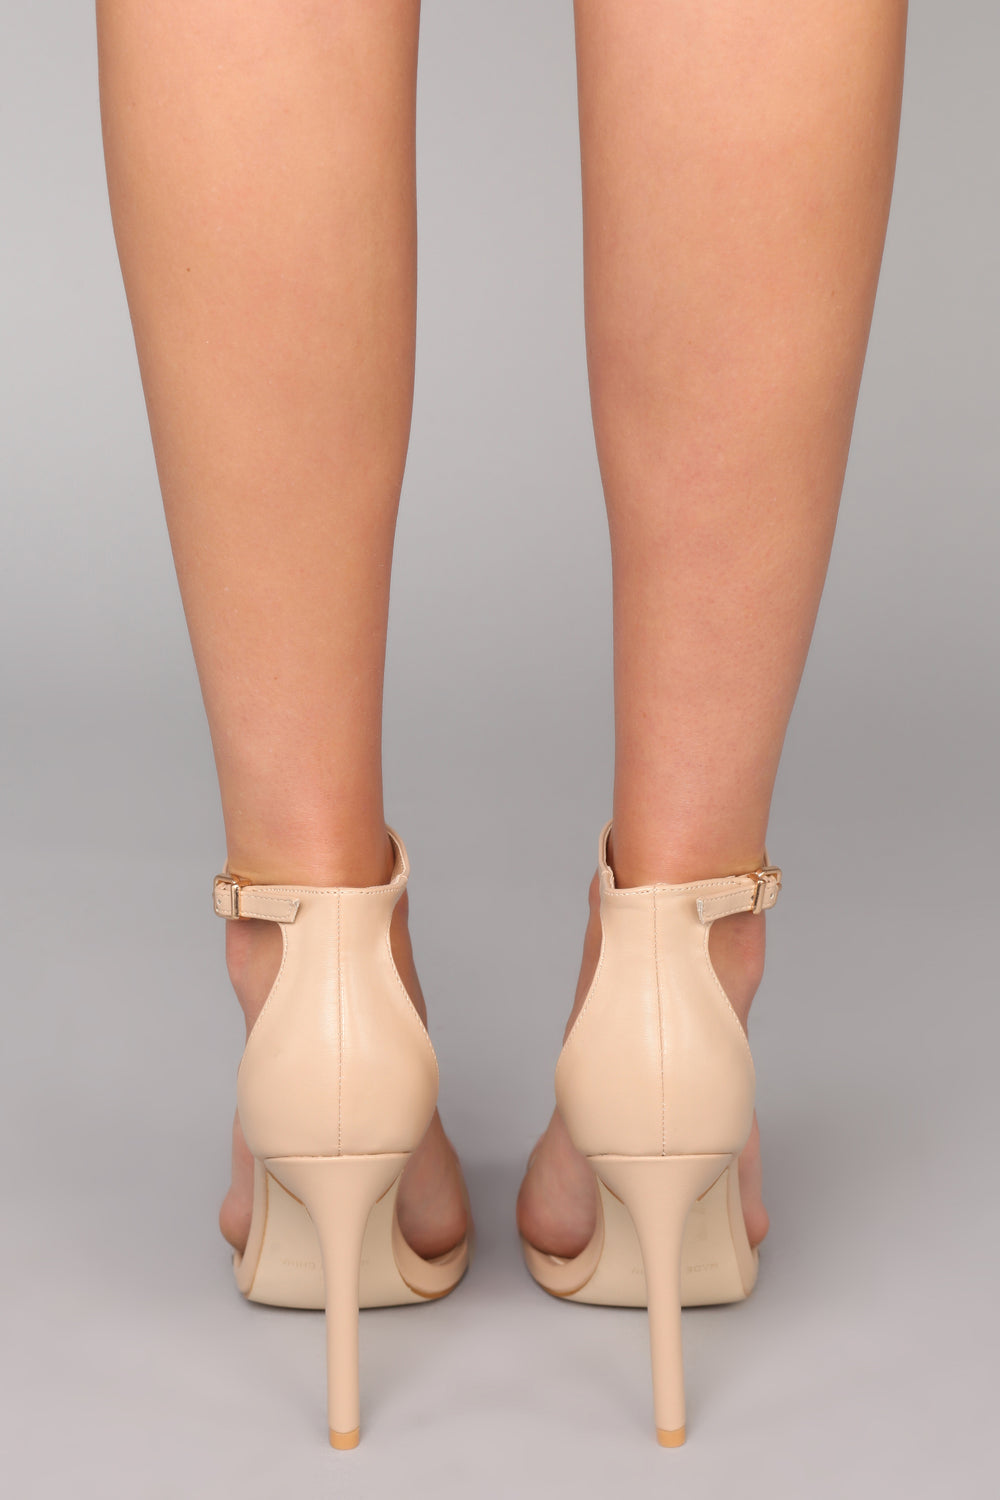 Found Myself Heel - Nude